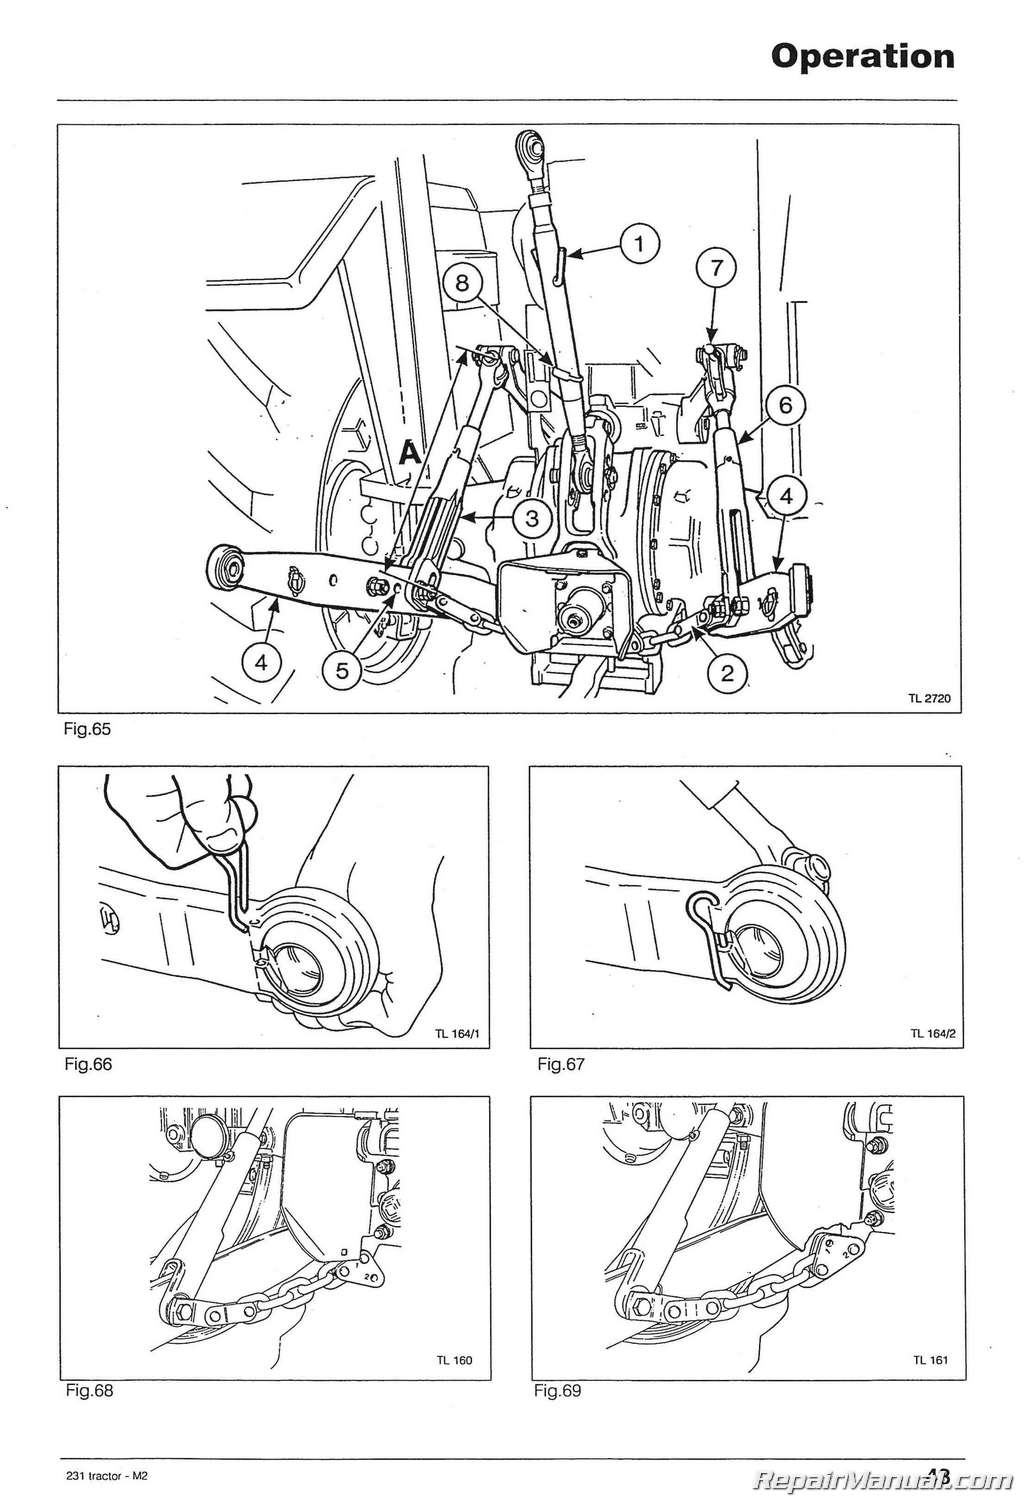 Pages From Js Mh O Mf Part Page on Power Steering Pressure Switches